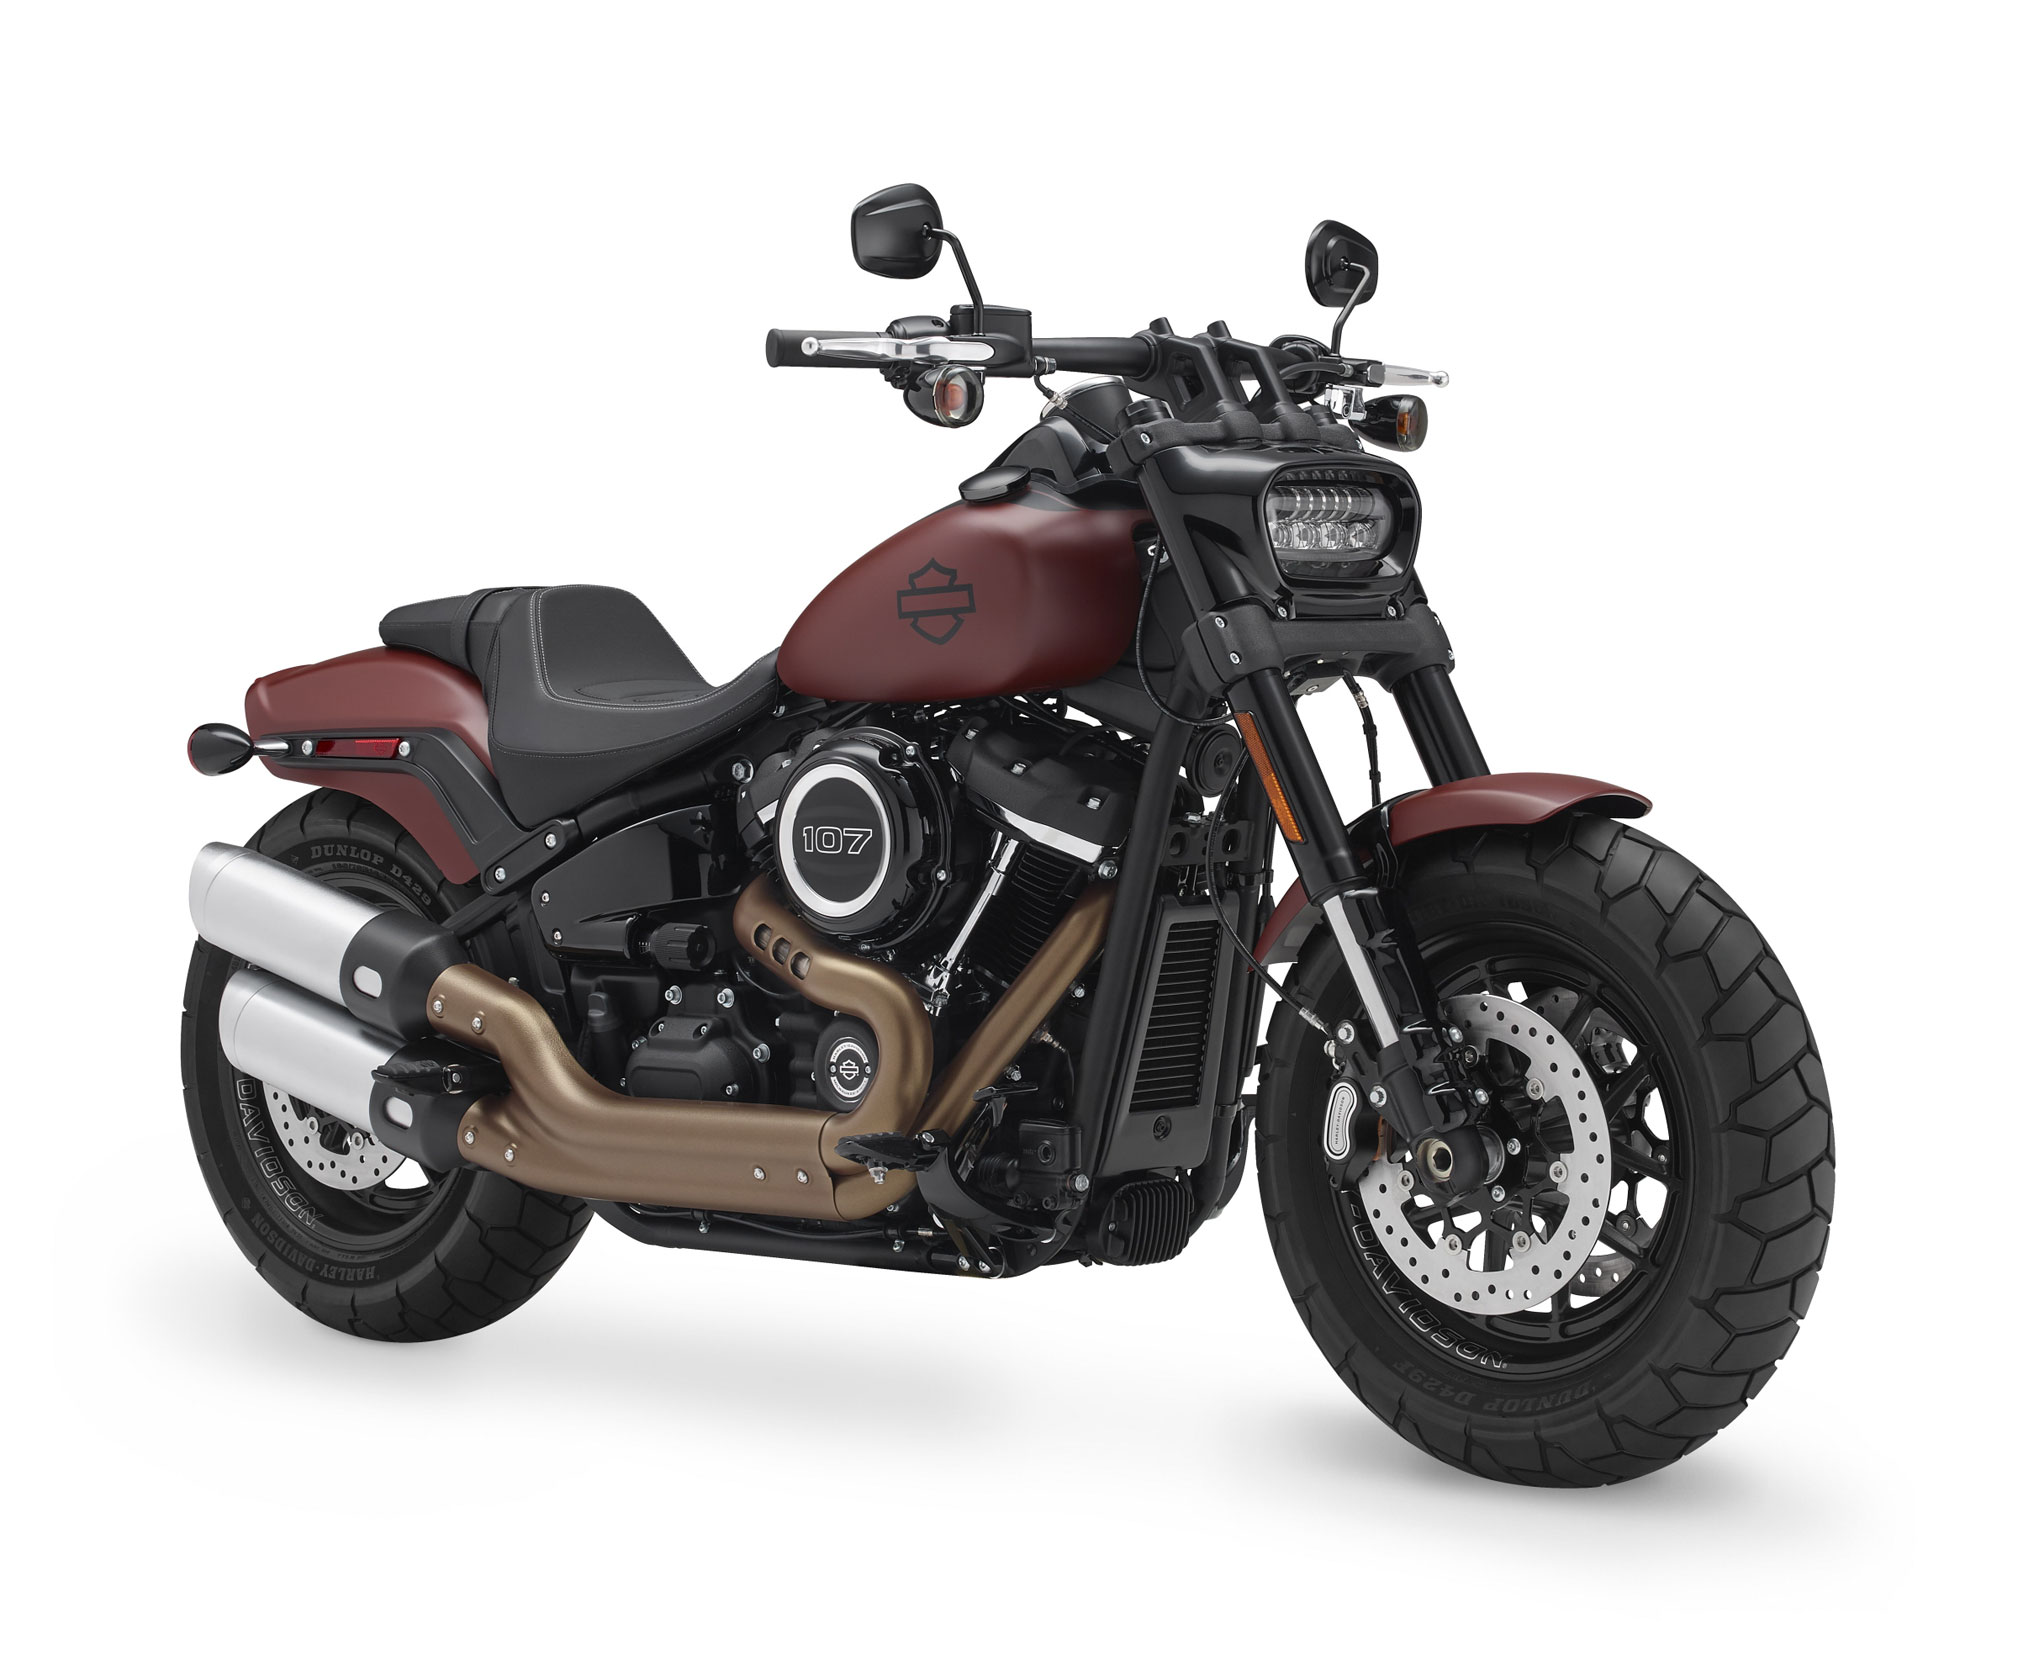 2018 harley davidson fat bob review total motorcycle. Black Bedroom Furniture Sets. Home Design Ideas